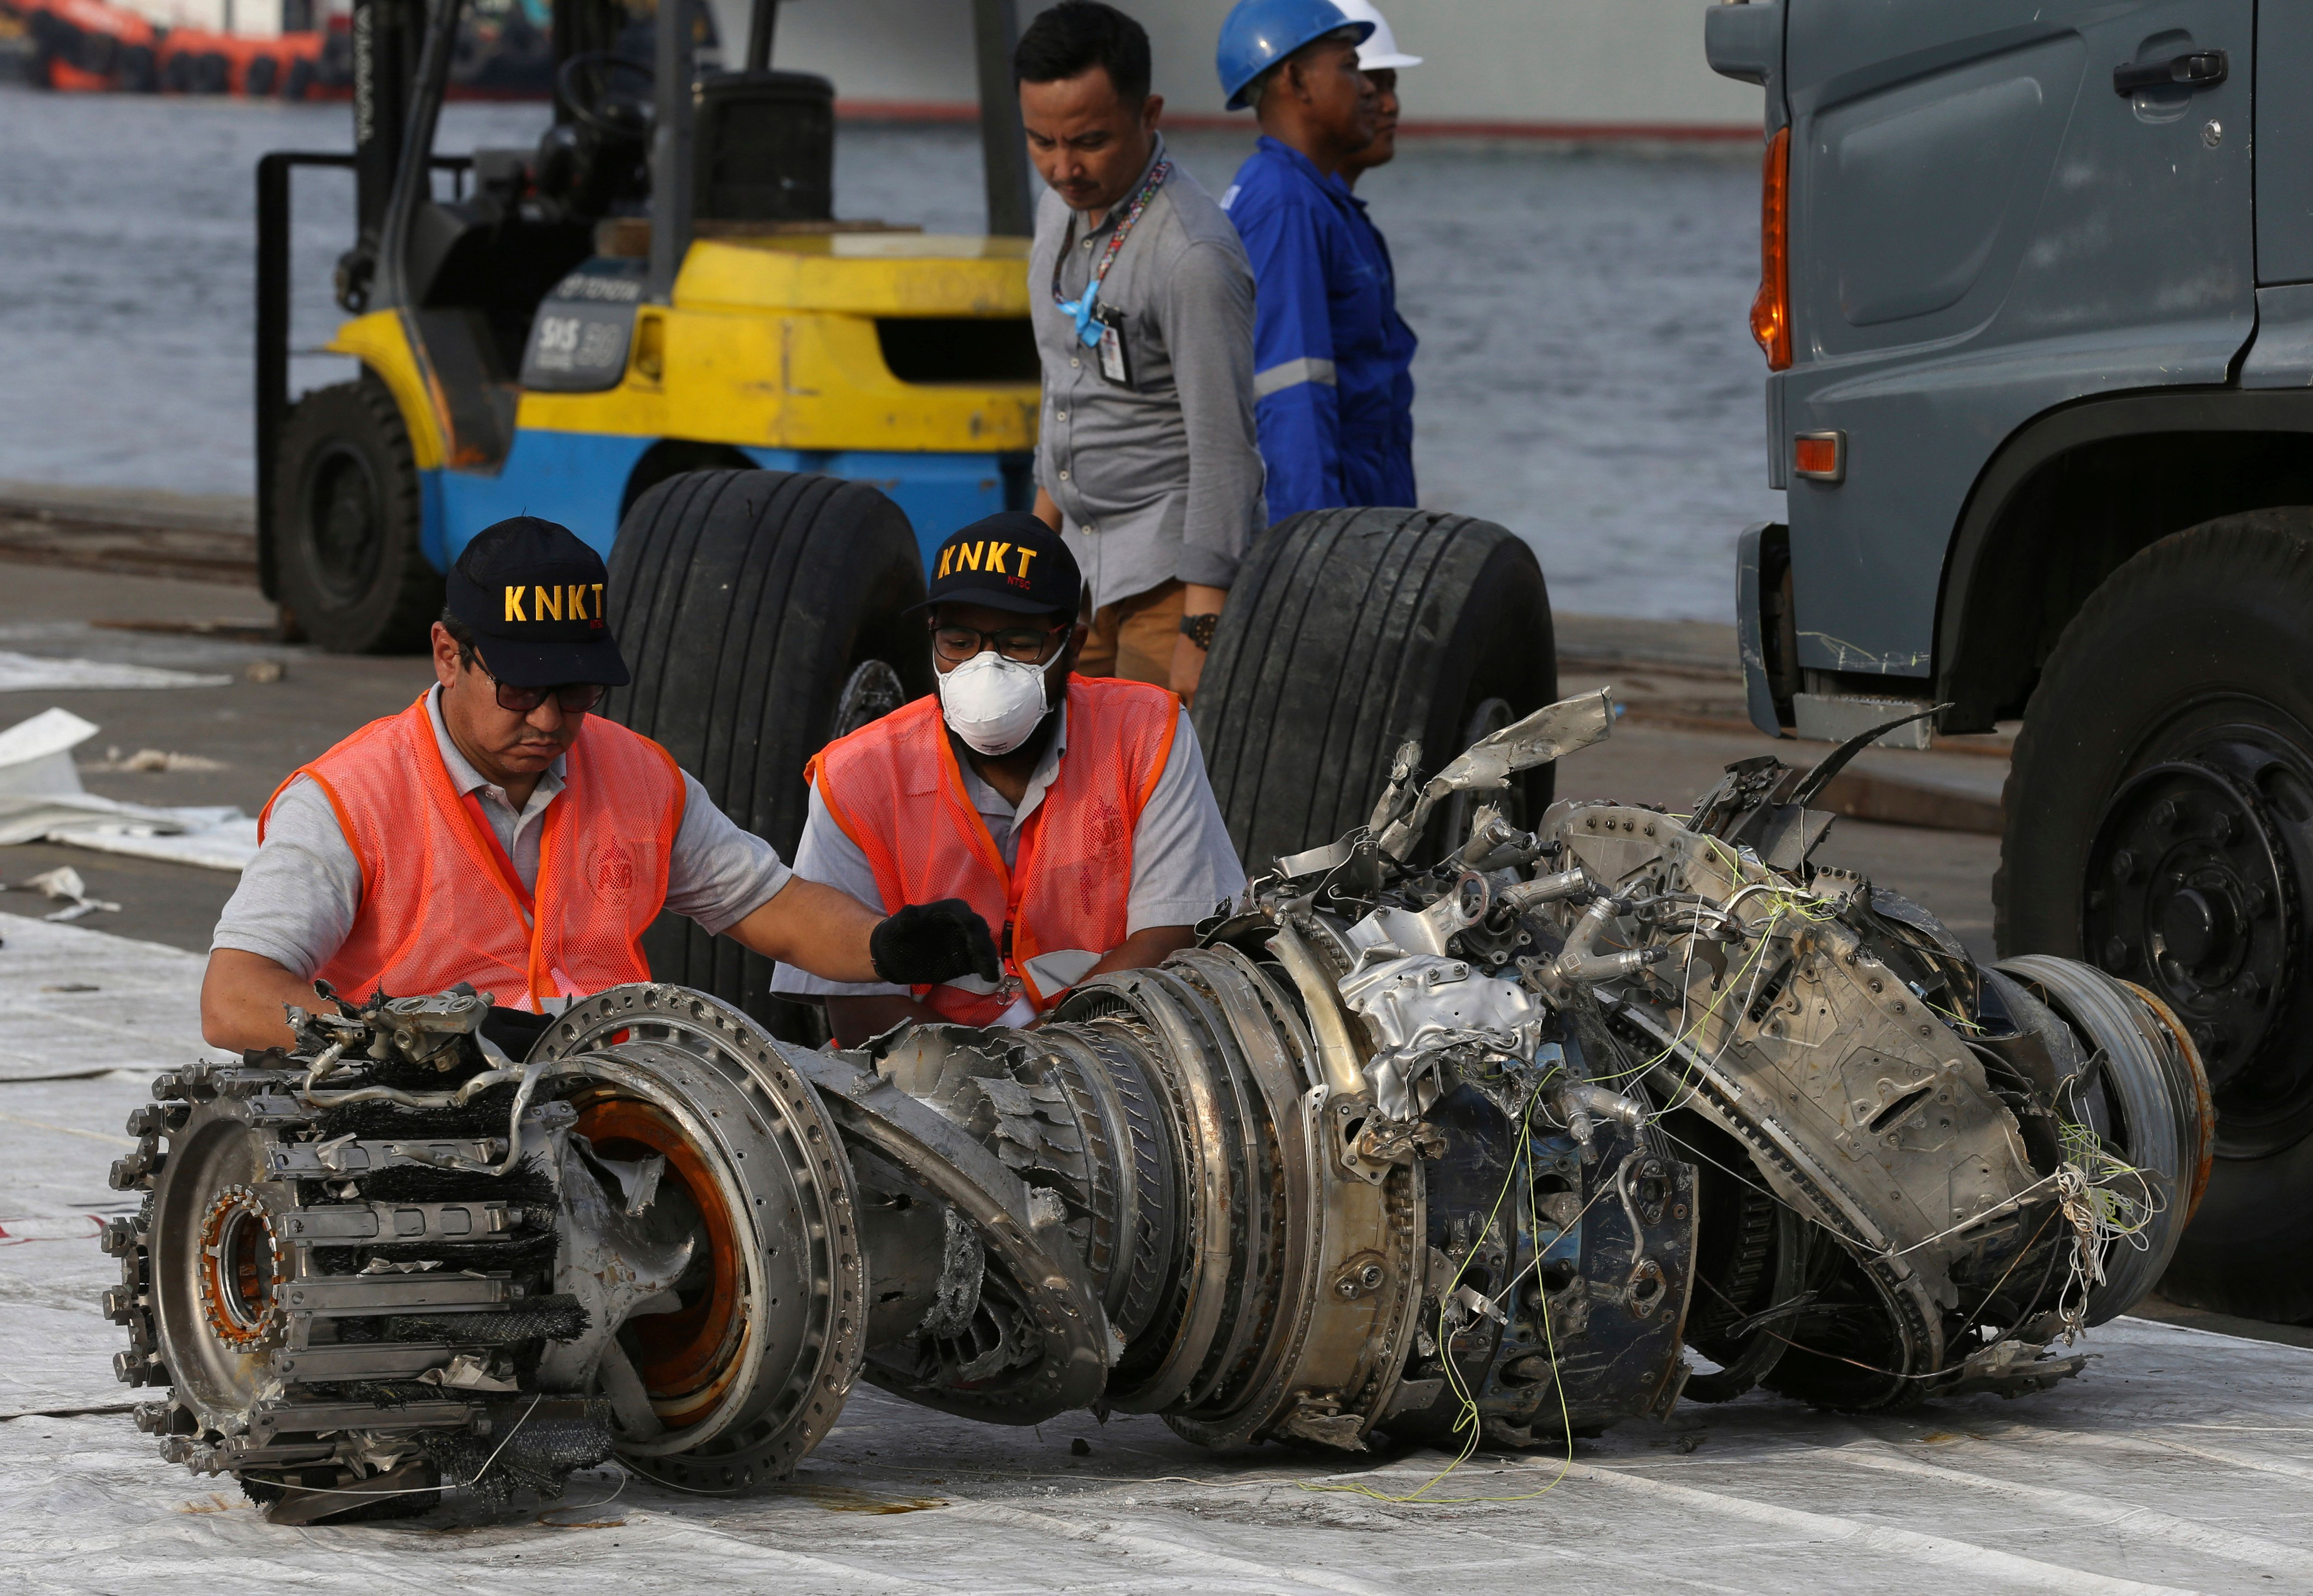 Lion Air Pilots Had Tried To Counteract Faulty Feature Before Crash: